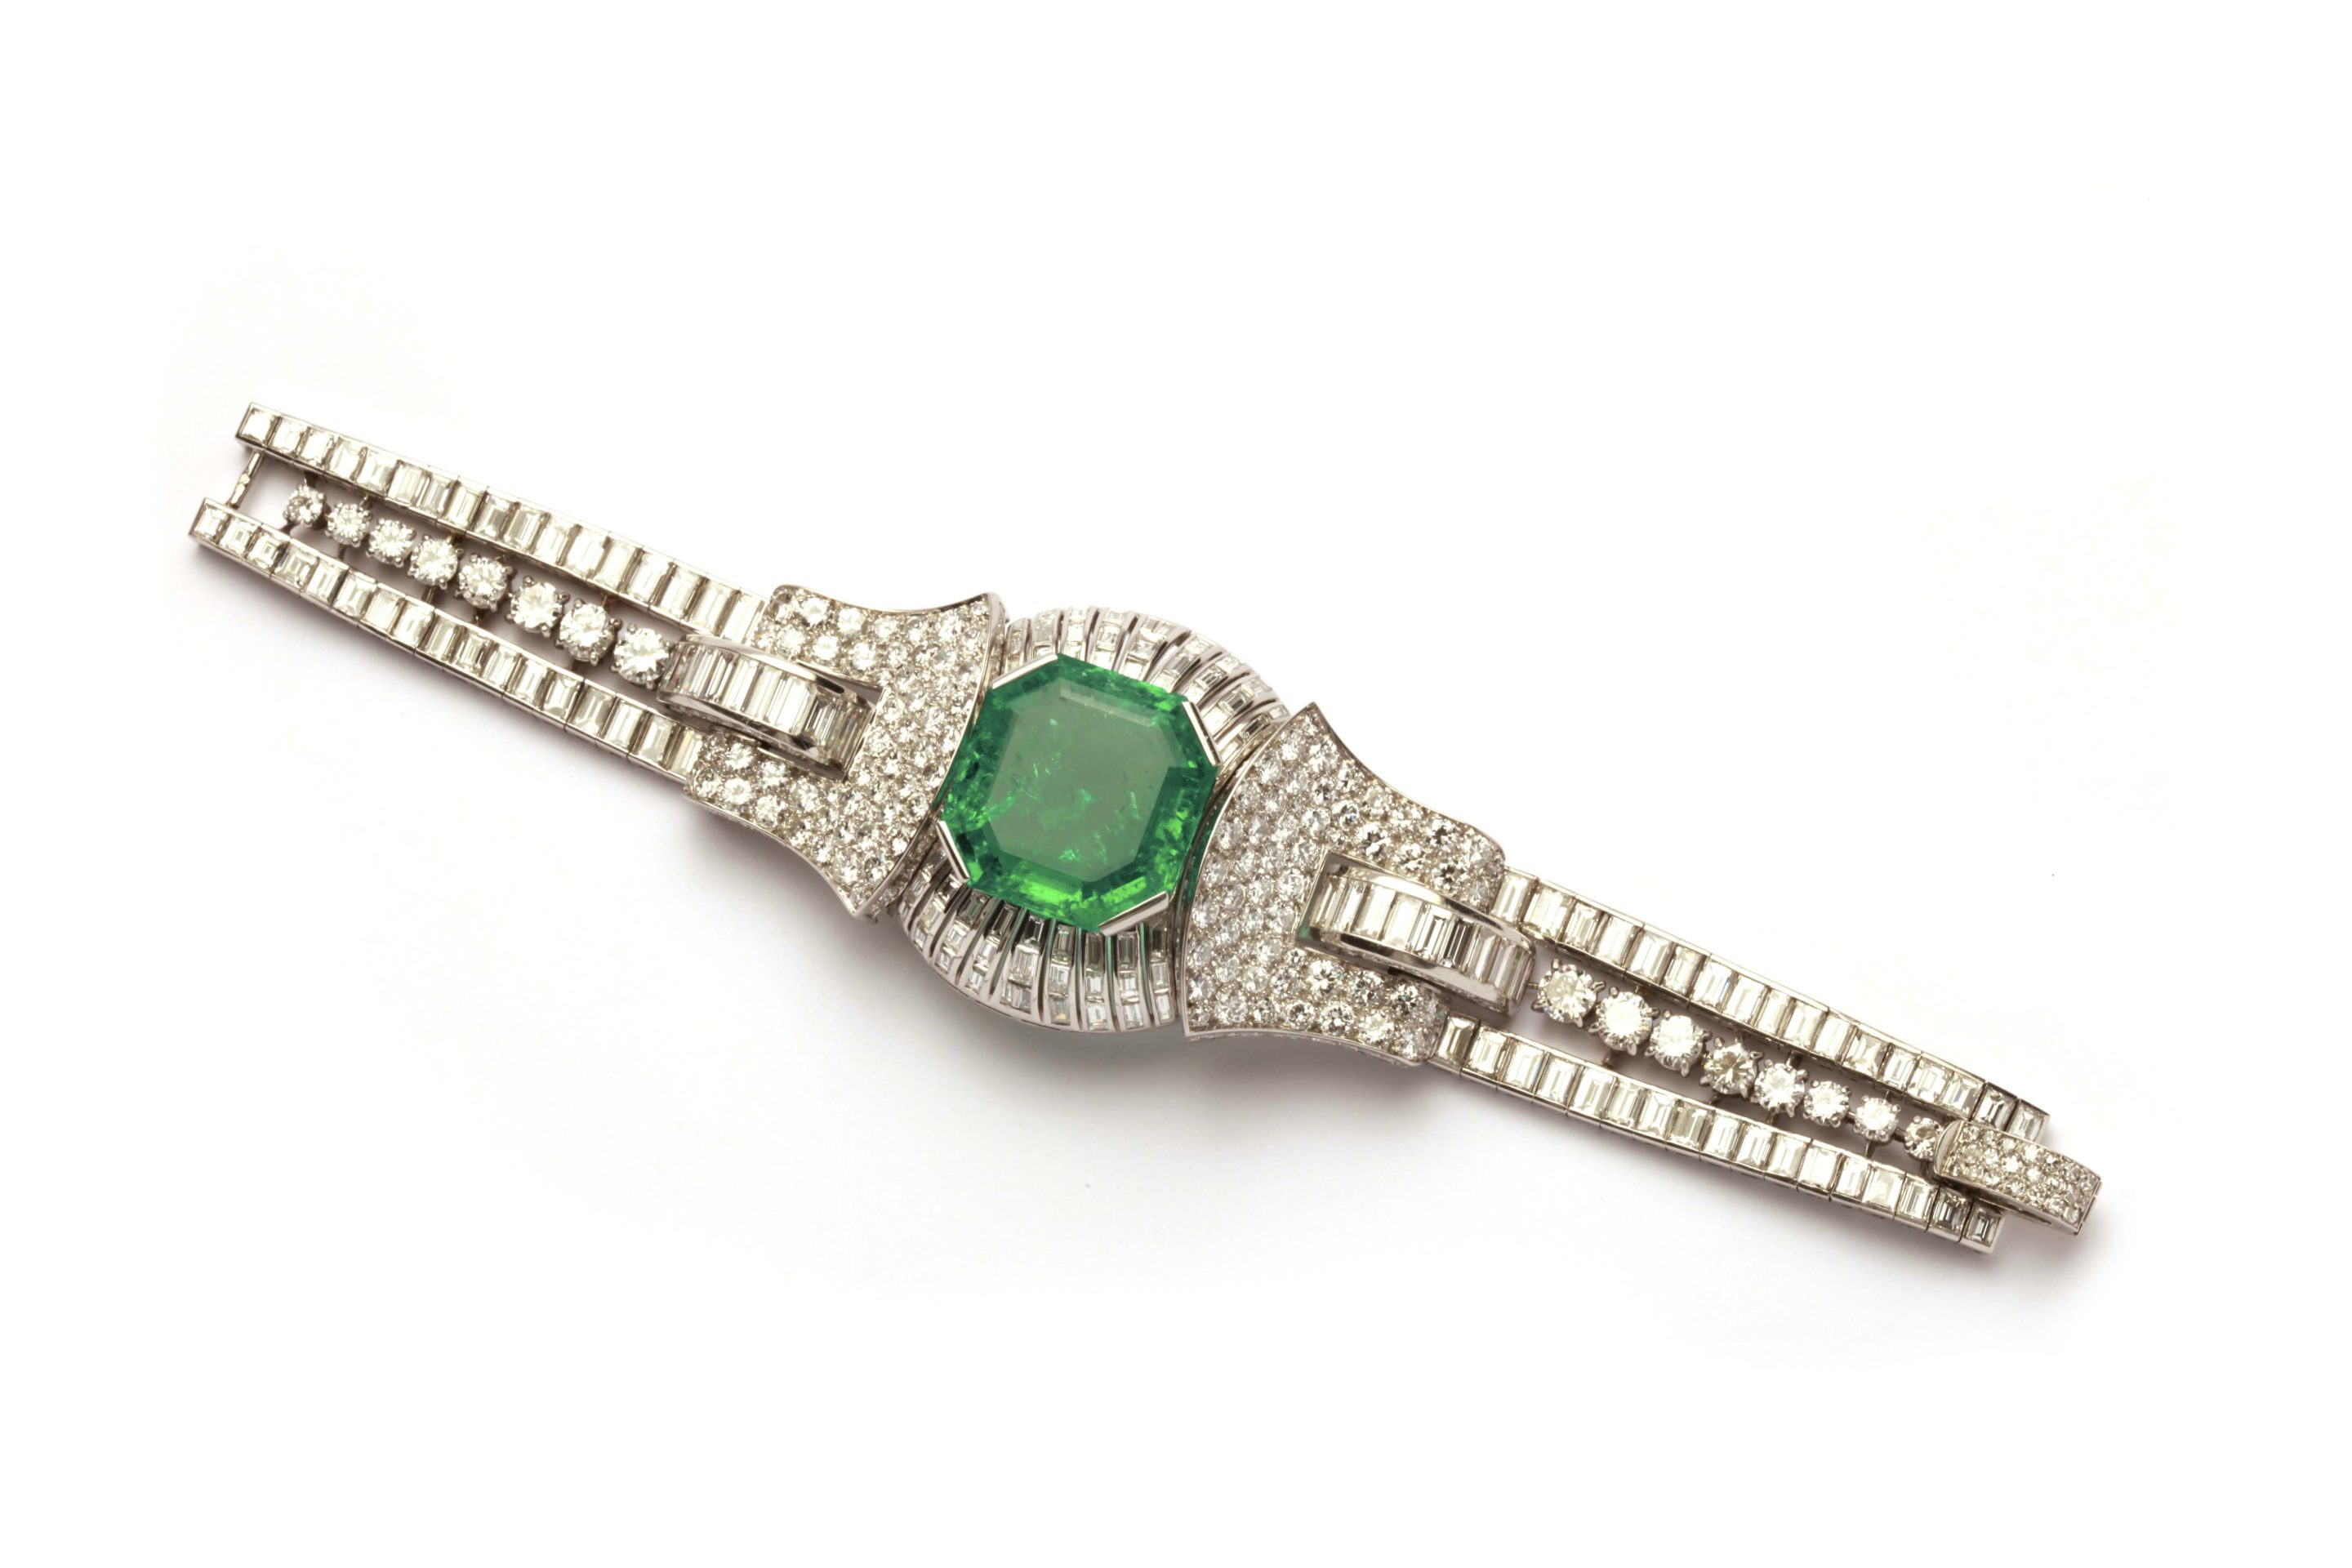 tear jewelry products green gem stone elegant bracelet emerald teardrop ocelle